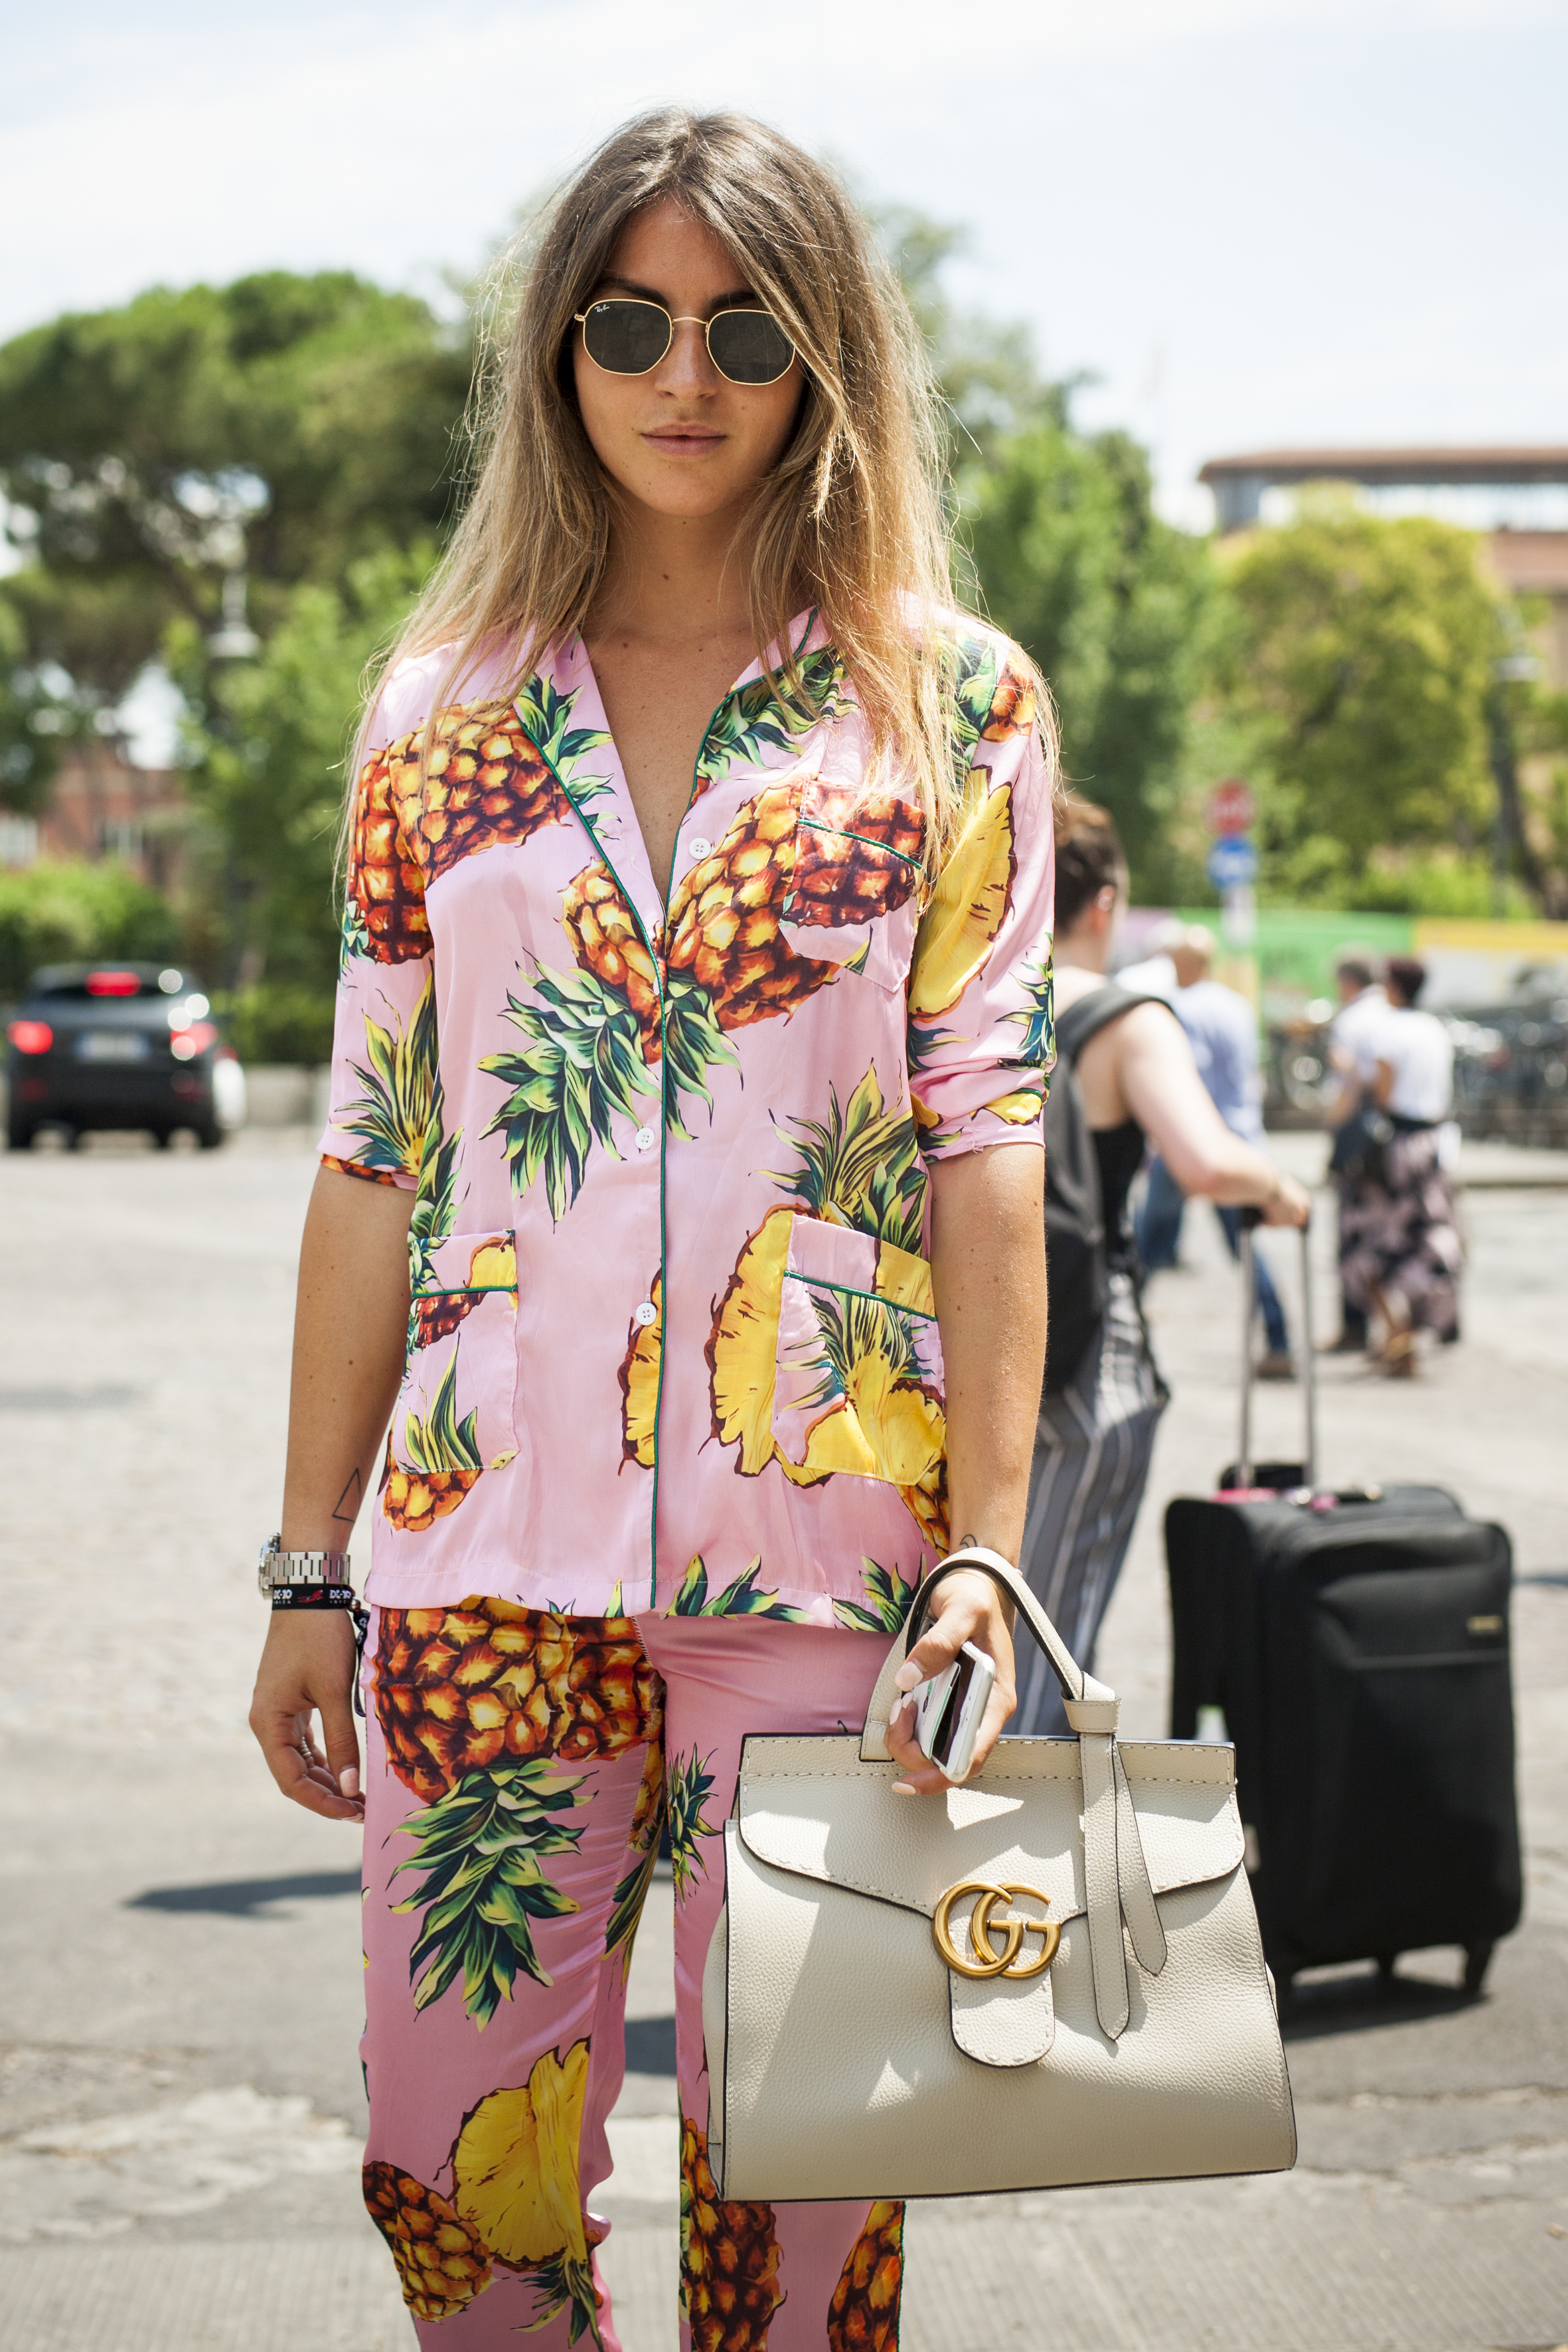 FLORENCE, ITALY - JUNE 15:  Lucrezia Trinca wears a pink pyjama with pineapple stamps and Gucci bag during Pitti Immagine Uomo 92. at Fortezza Da Basso on June 15, 2017 in Florence, Italy.  (Photo by Claudio Lavenia/Getty Images)